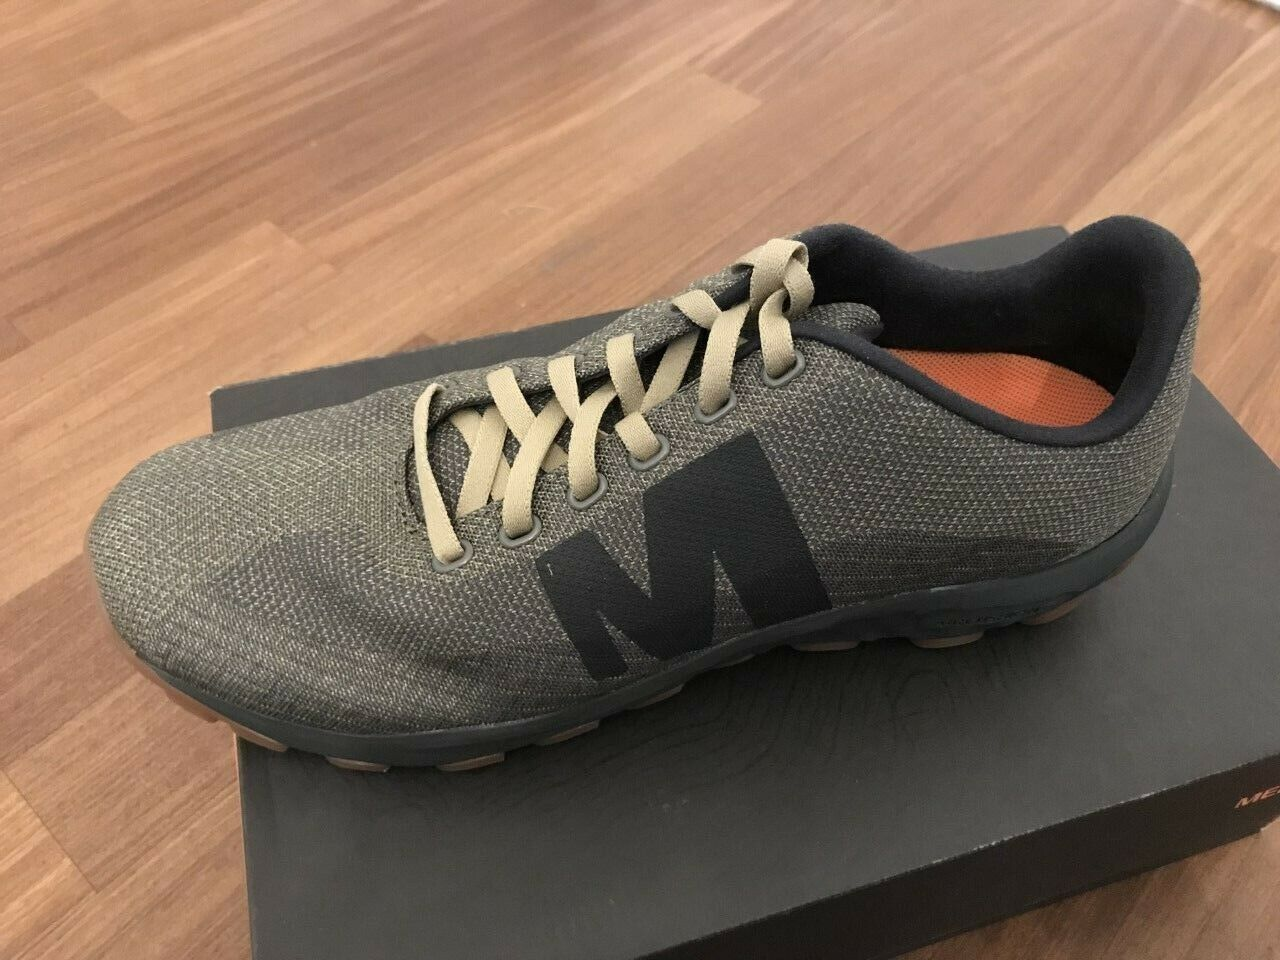 shoes MERRELL SPRINT BLAST JAQ AC+ DUSTY OLIVE - NUOVE - SNEAKER MERRELL